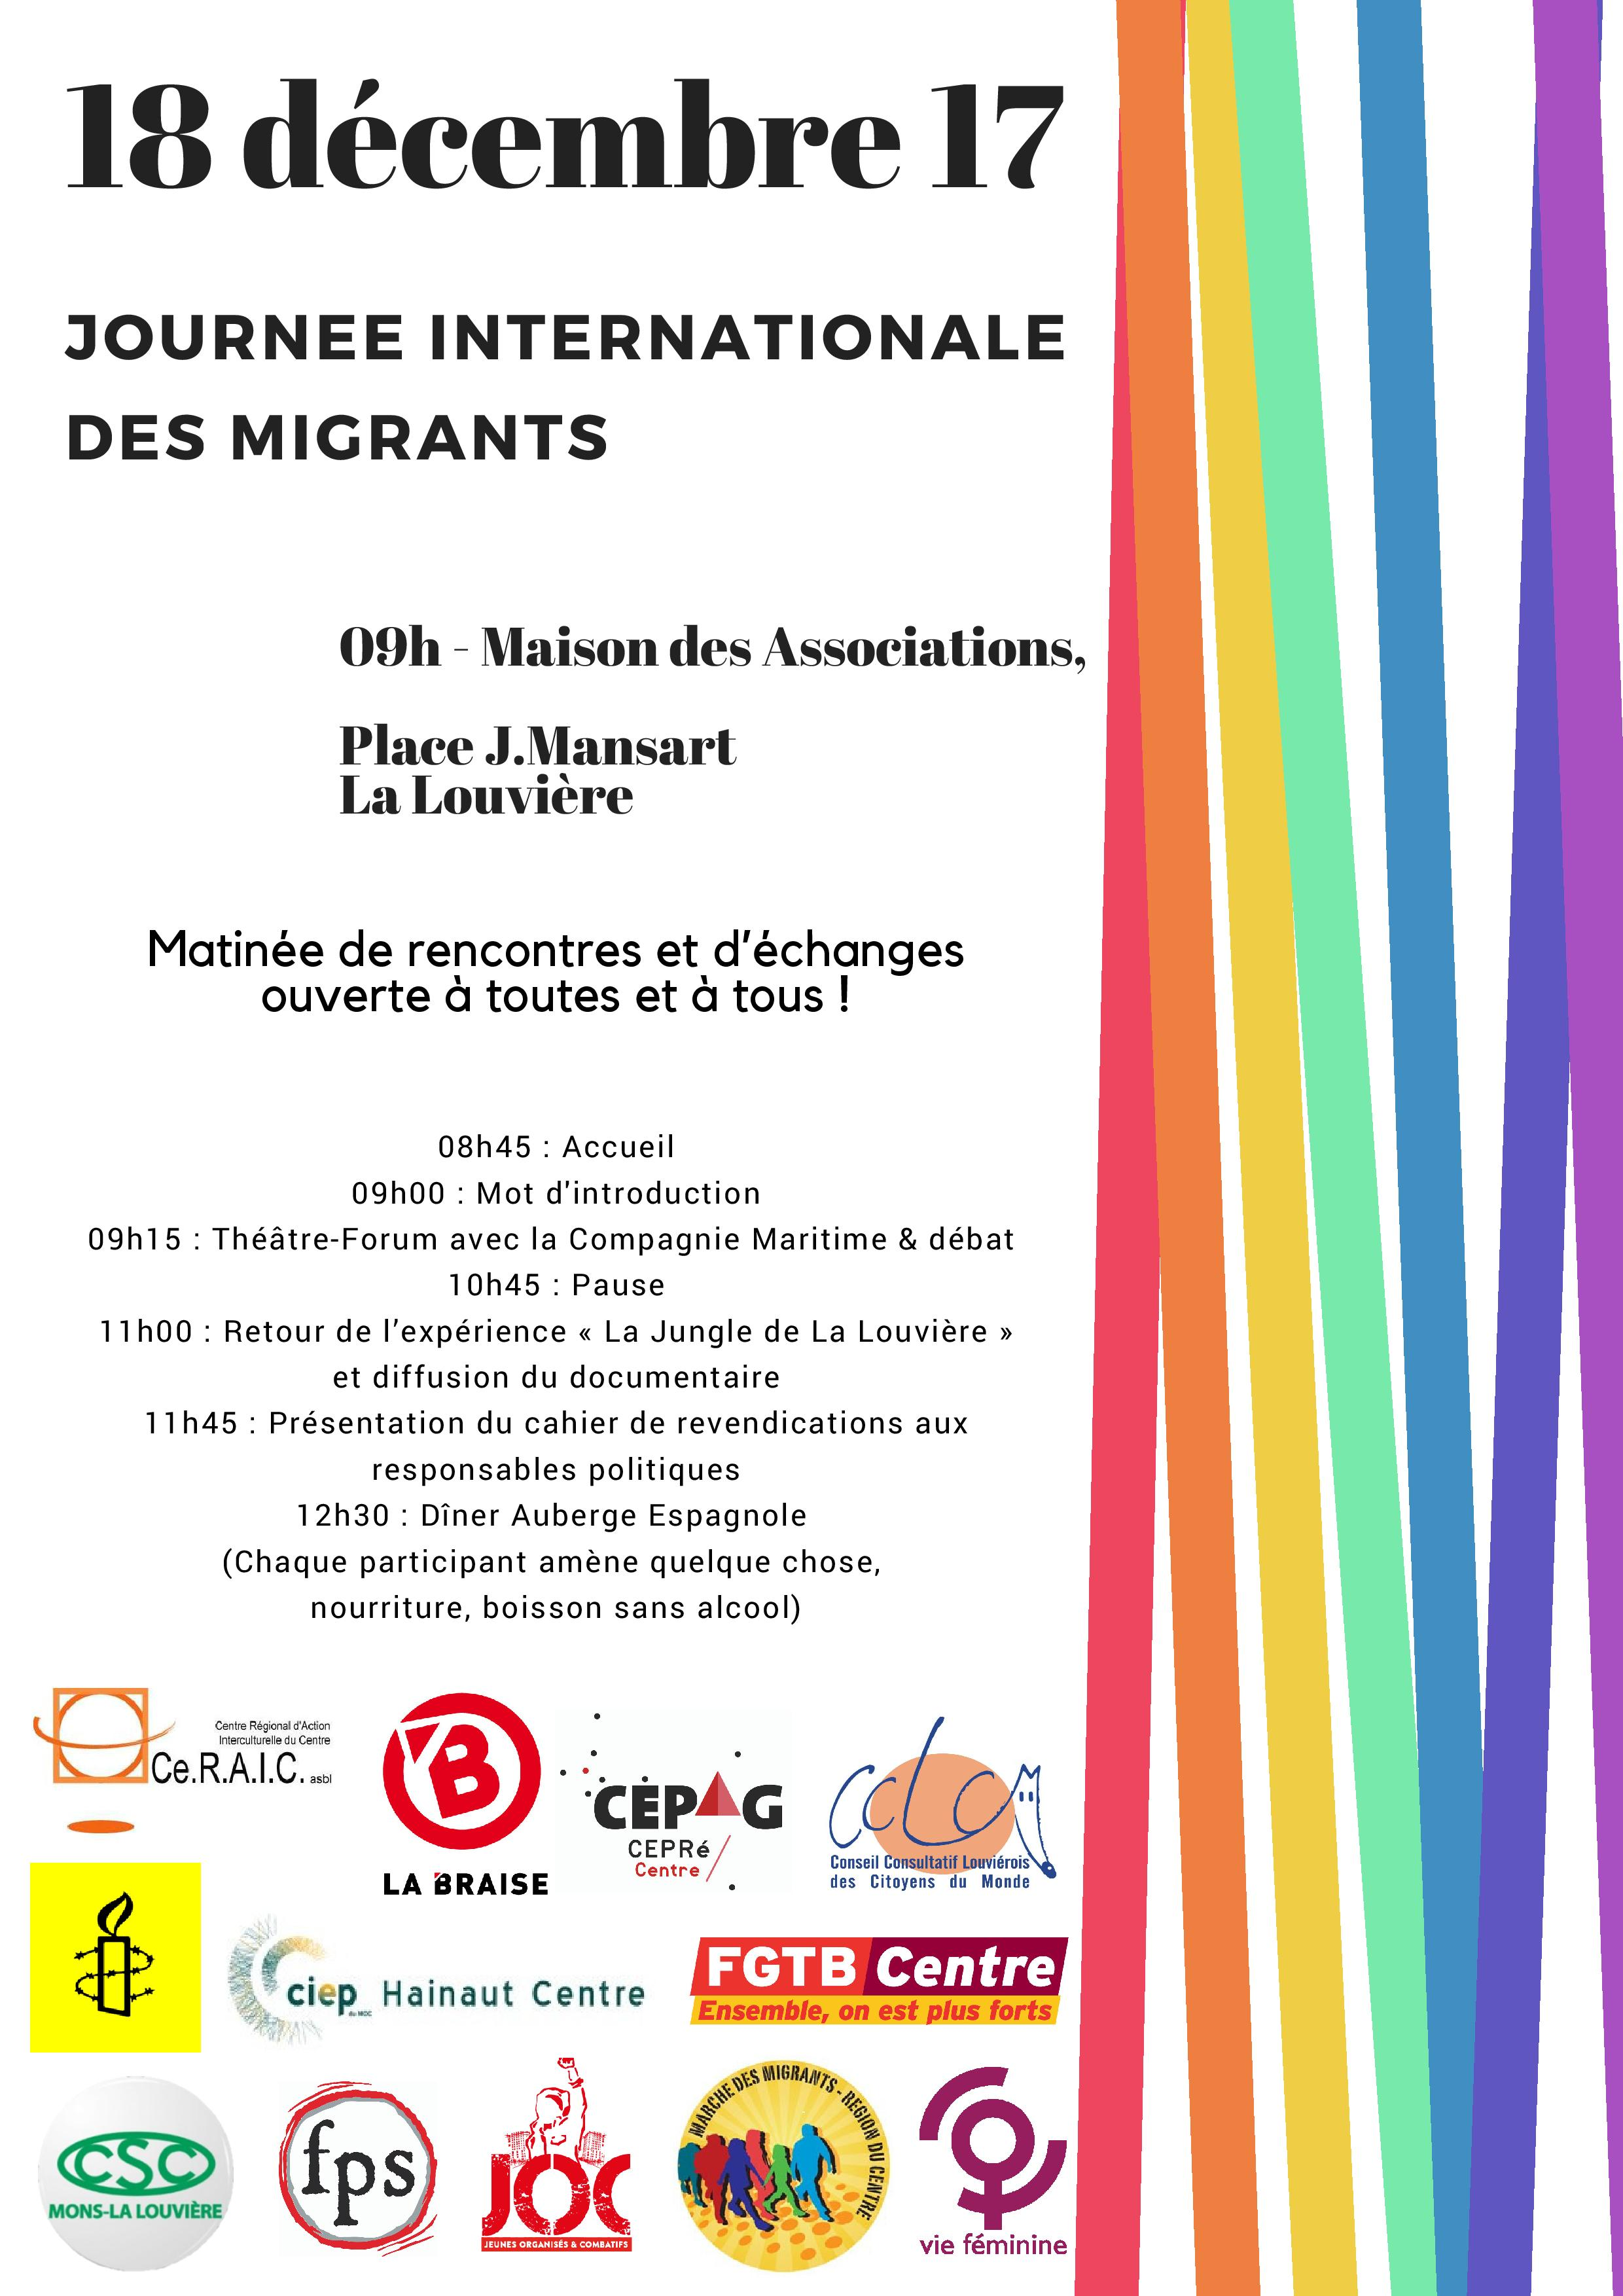 affiche journée internationale migrants 18122017 page 001